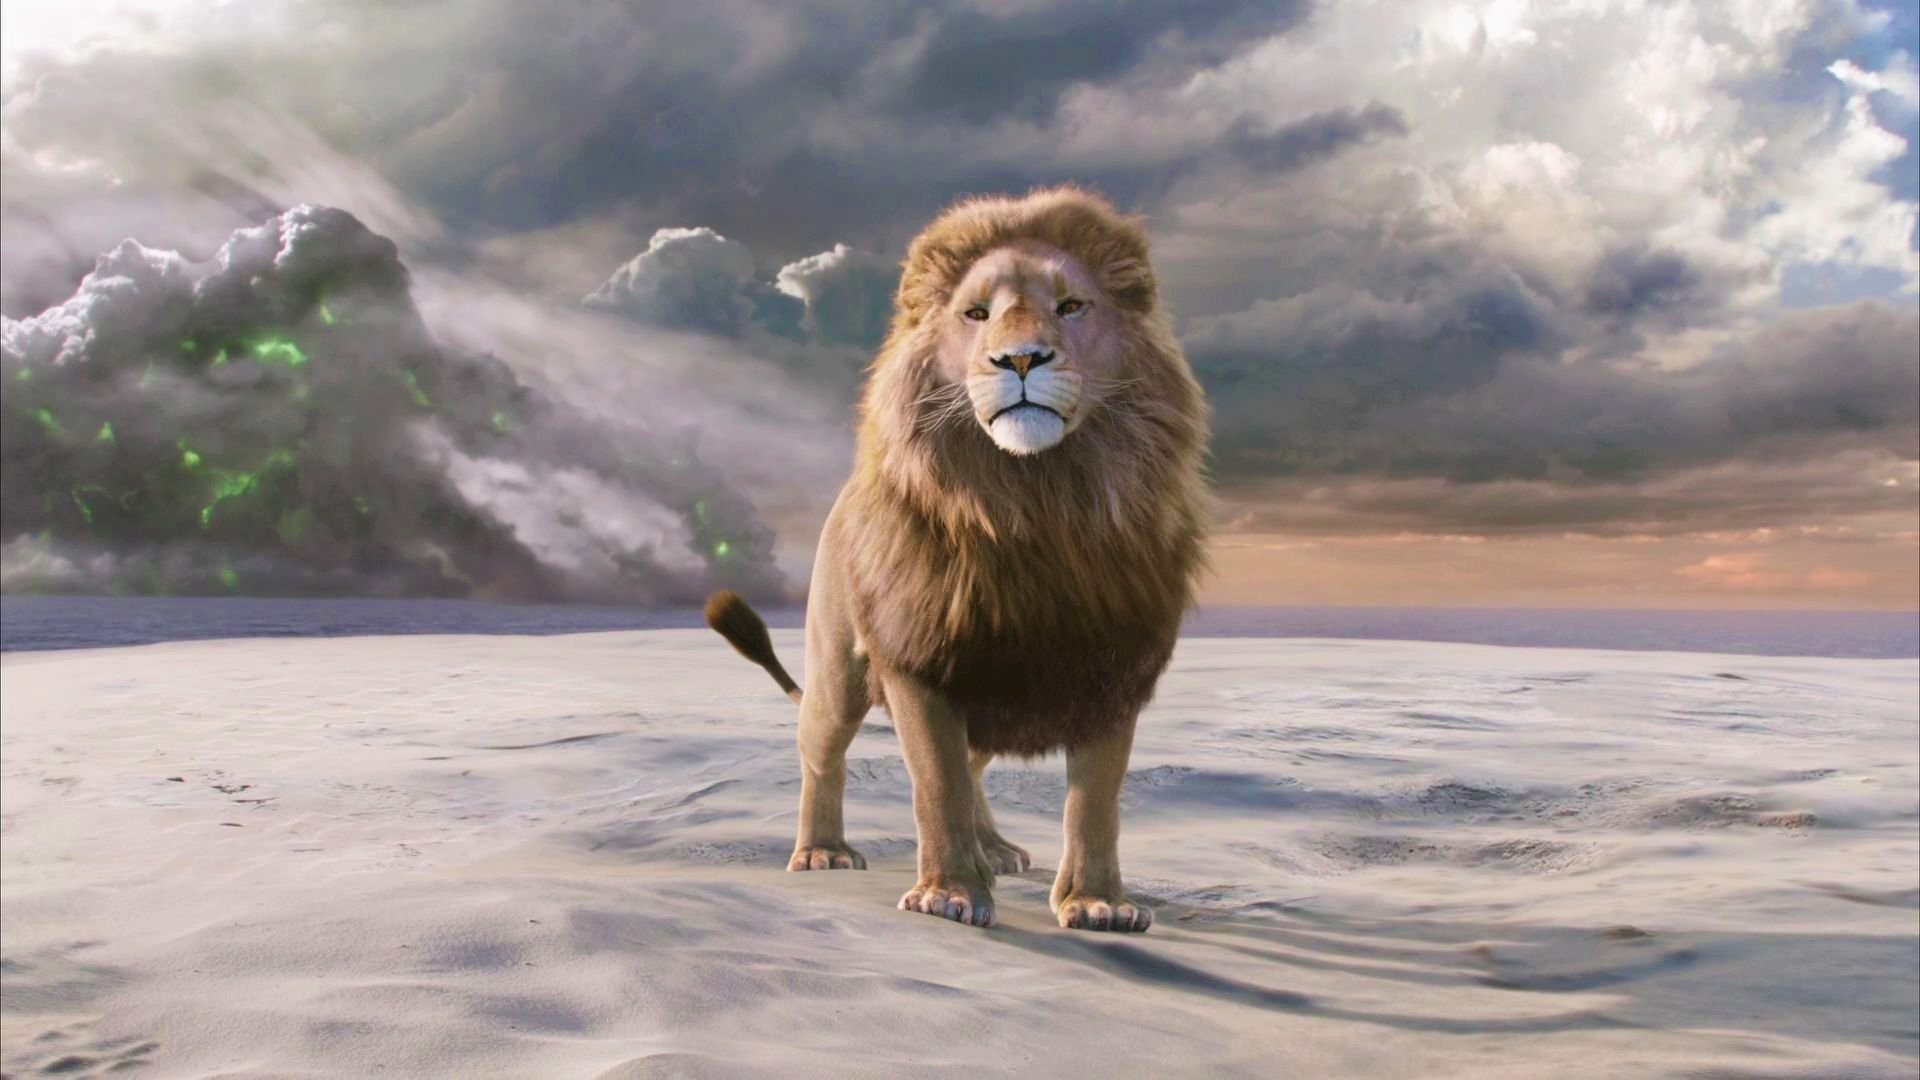 Aslan The Lion Hd Wallpaper Background Image 1920x1080 Id